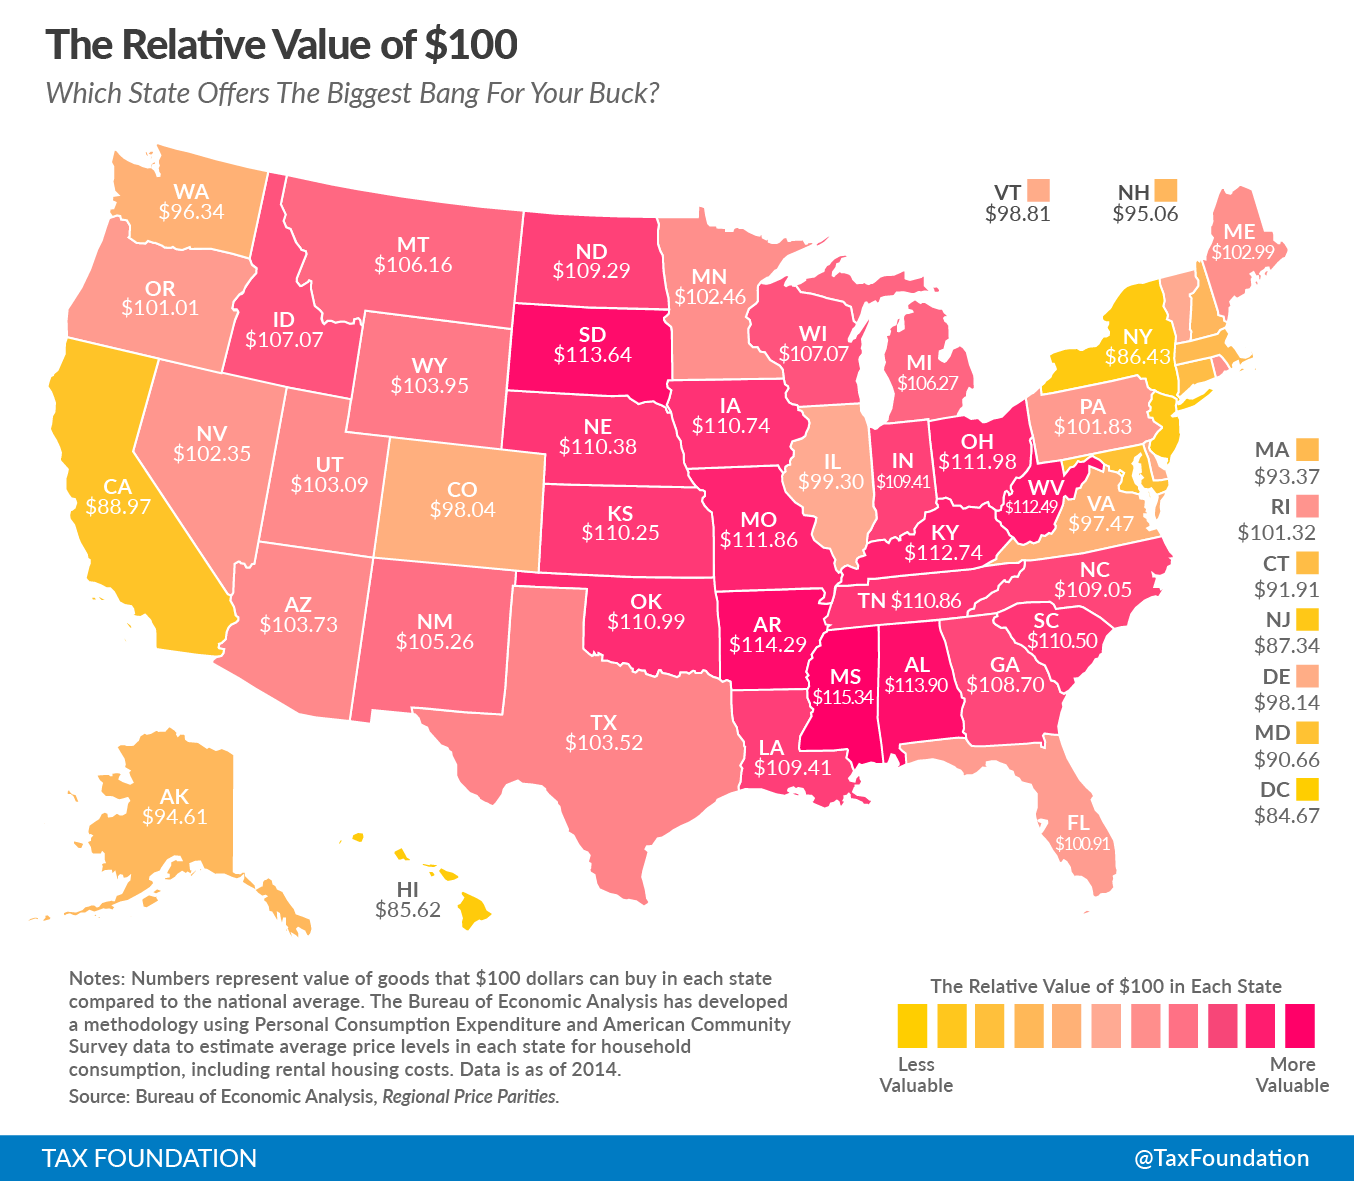 State Map Of Relative Value Of $100